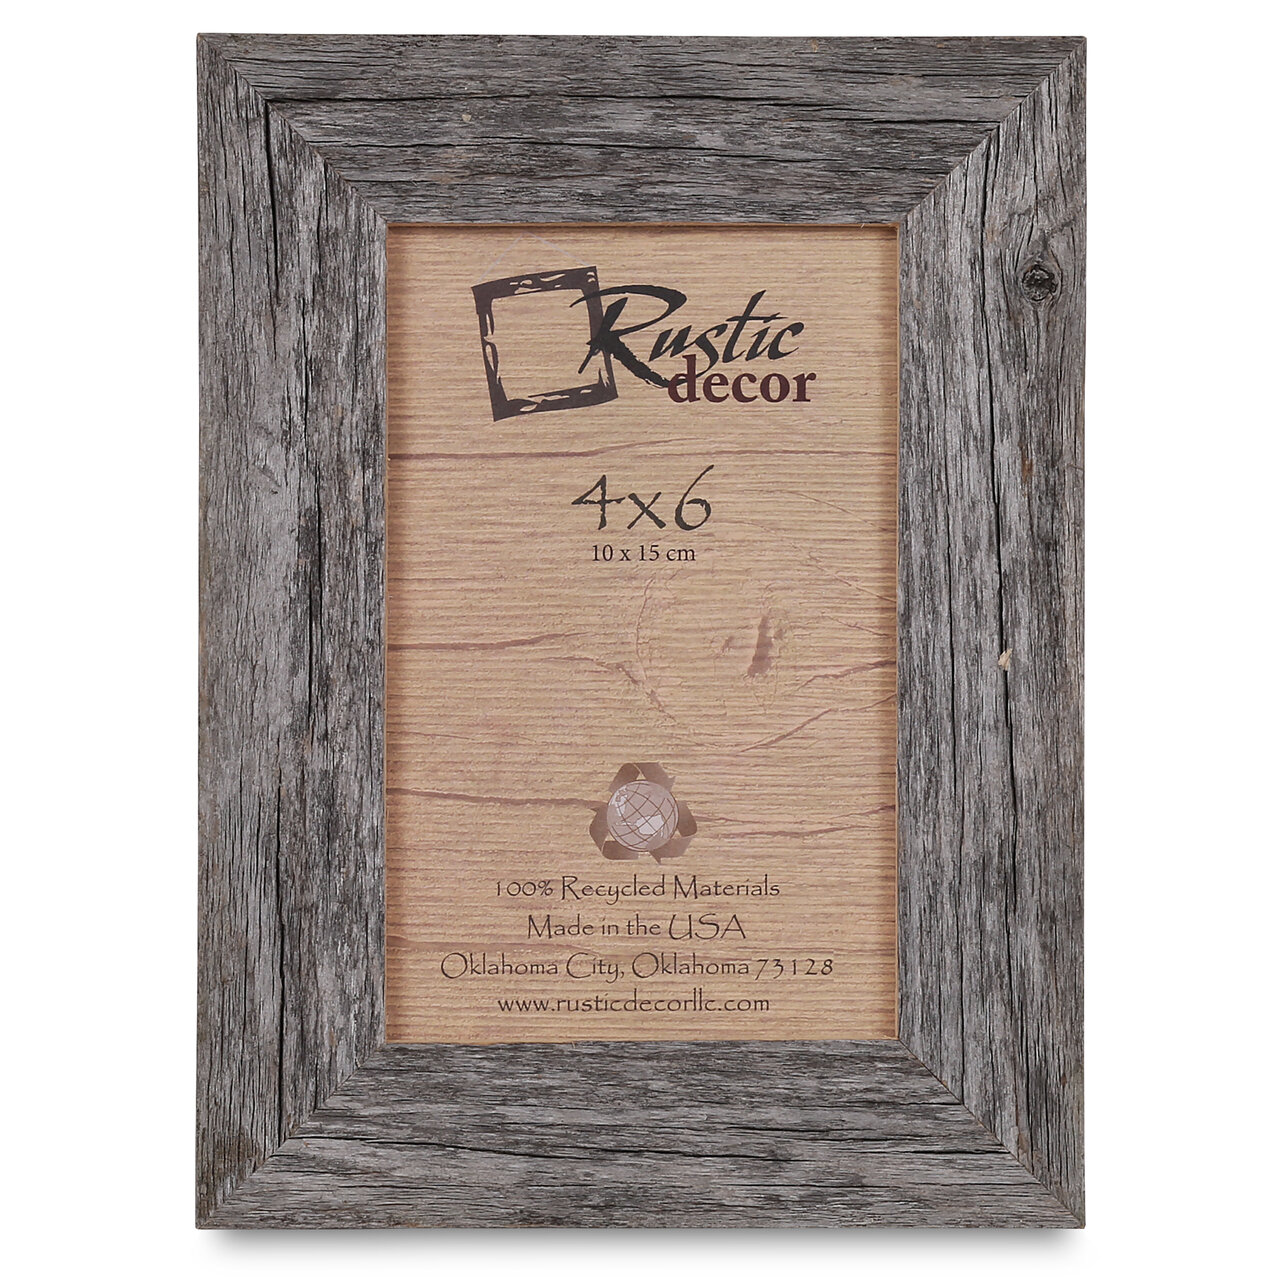 Union rustic burham barn wood reclaimed standard picture frame union rustic burham barn wood reclaimed standard picture frame reviews wayfair jeuxipadfo Choice Image